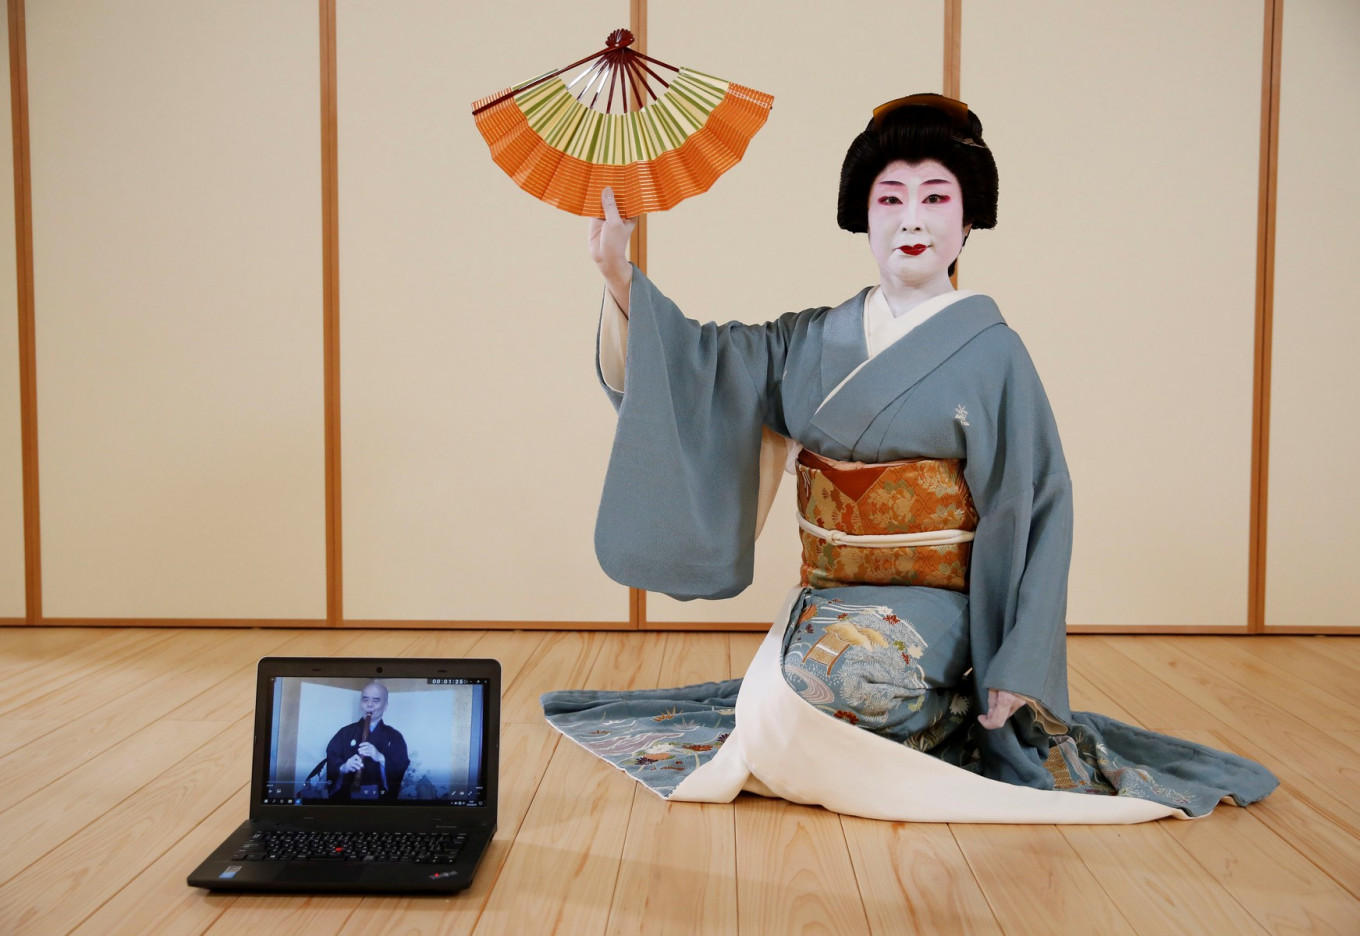 Tokijyo Hanasaki, a jiutamai dancer, poses for a photograph behind a laptop playing a musical performance which was filmed in advance in order to avoid physical contact, to accompany  Hanasaki's dance performance for a film being made that is supported by the Tokyo Metropolitan government in order to support artists during the coronavirus disease (COVID-19) outbreak, at a studio in Tokyo, Japan, June 29, 2020. Reuters/Kim Kyung-Hoon